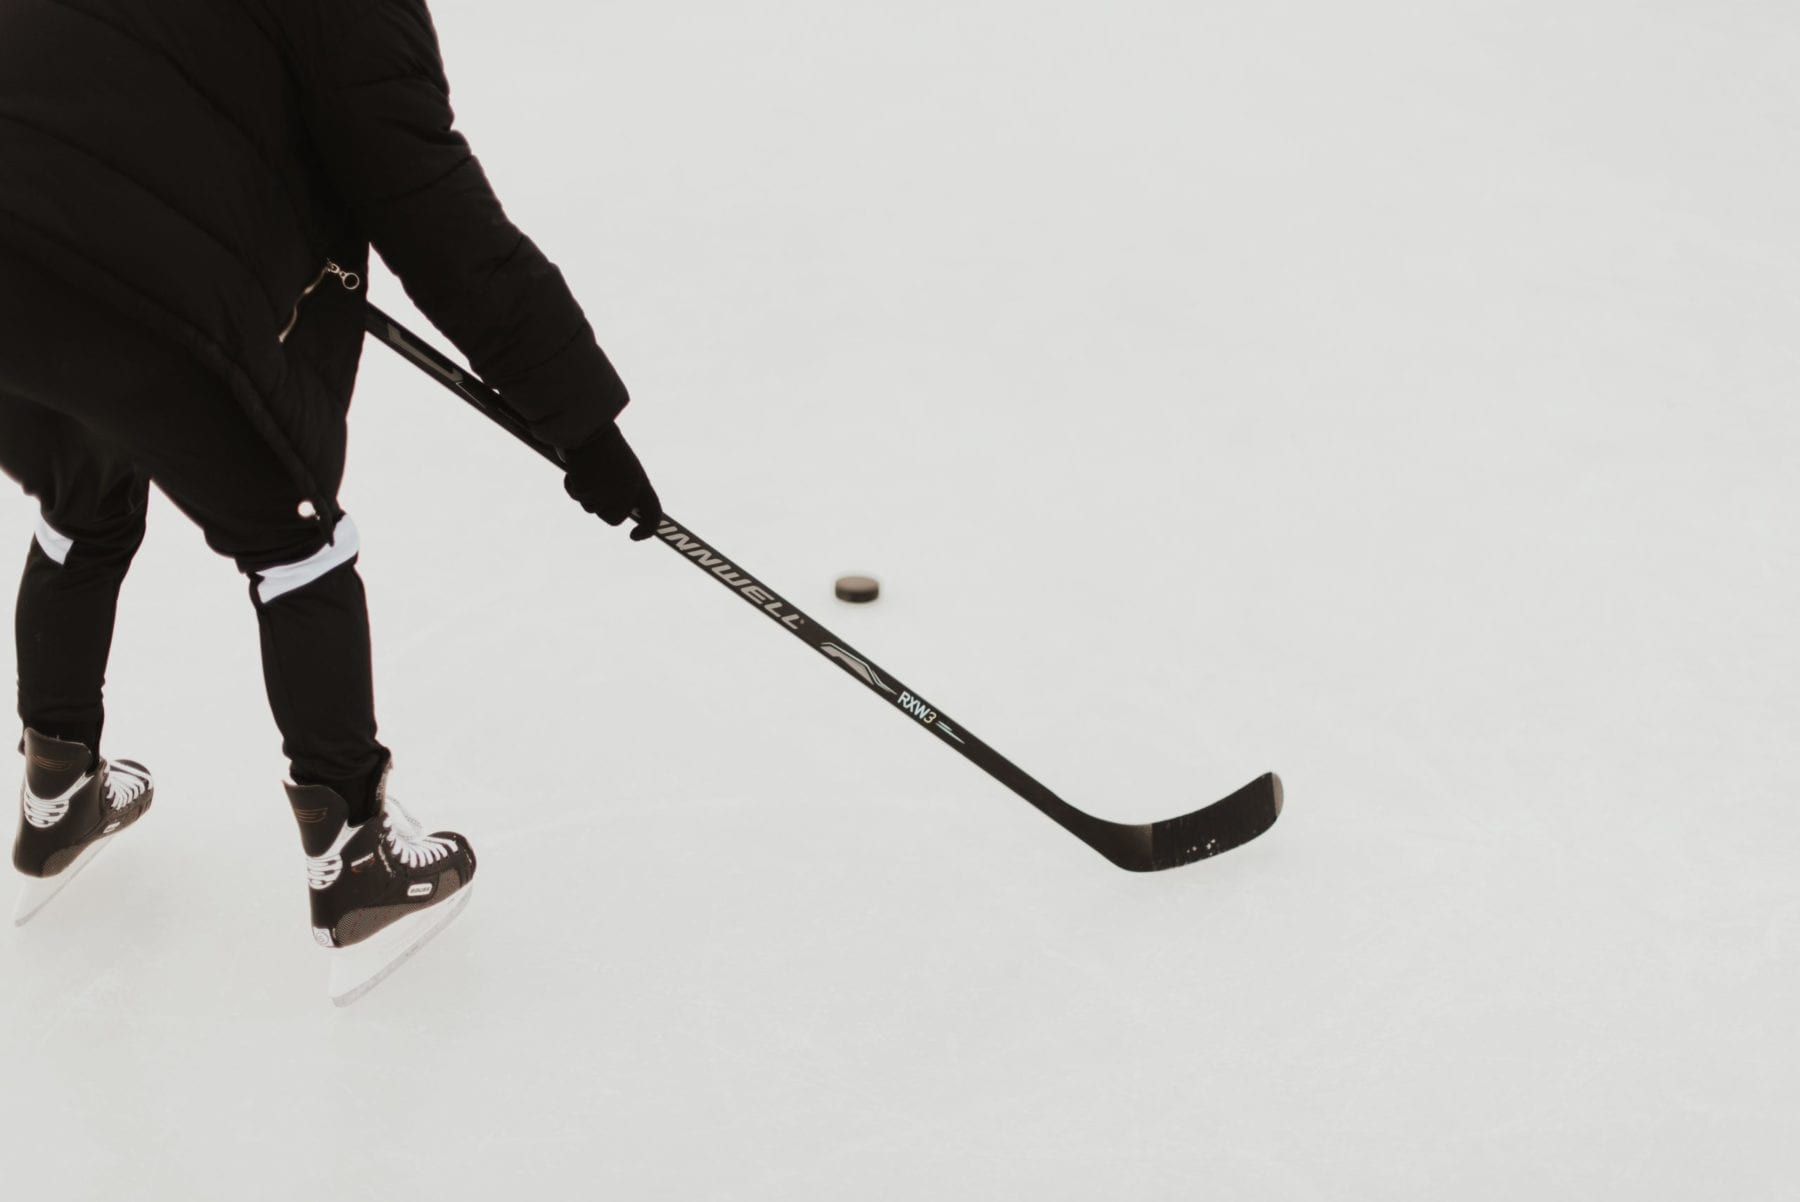 Future Goals offers hockey-themed STEM lessons